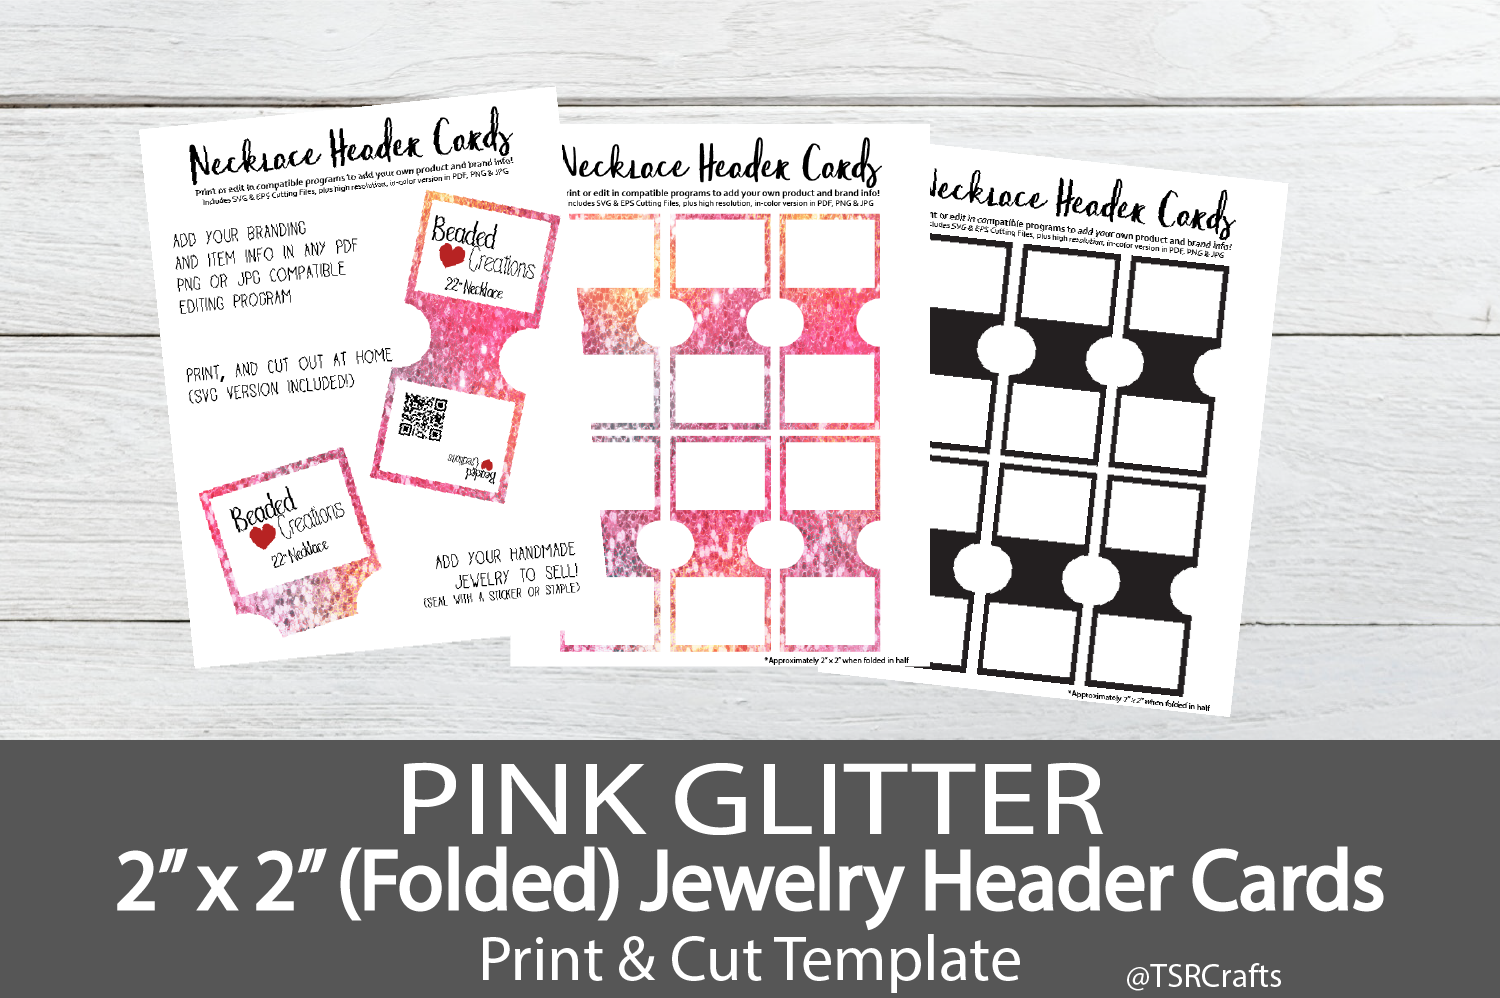 Jewelry Header Cards for Necklace -Pink Glitter example image 1